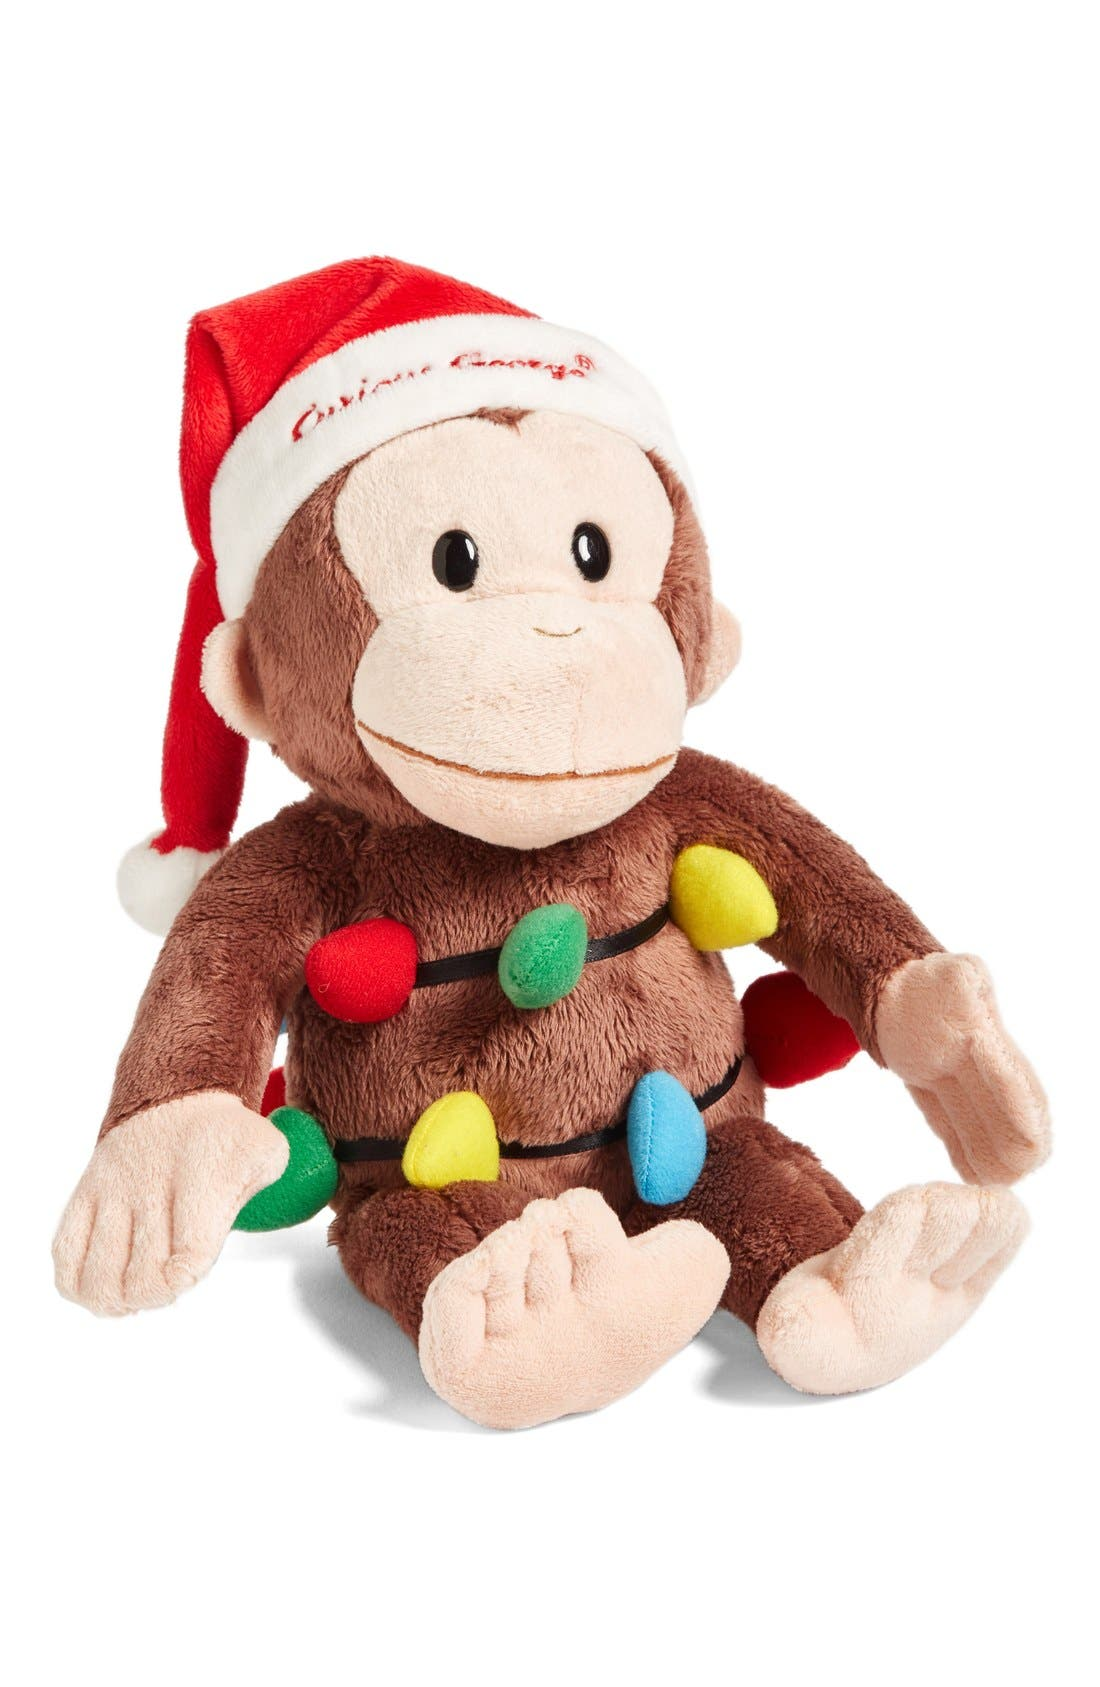 Alternate Image 1 Selected - Gund Curious George Holiday Stuffed Animal